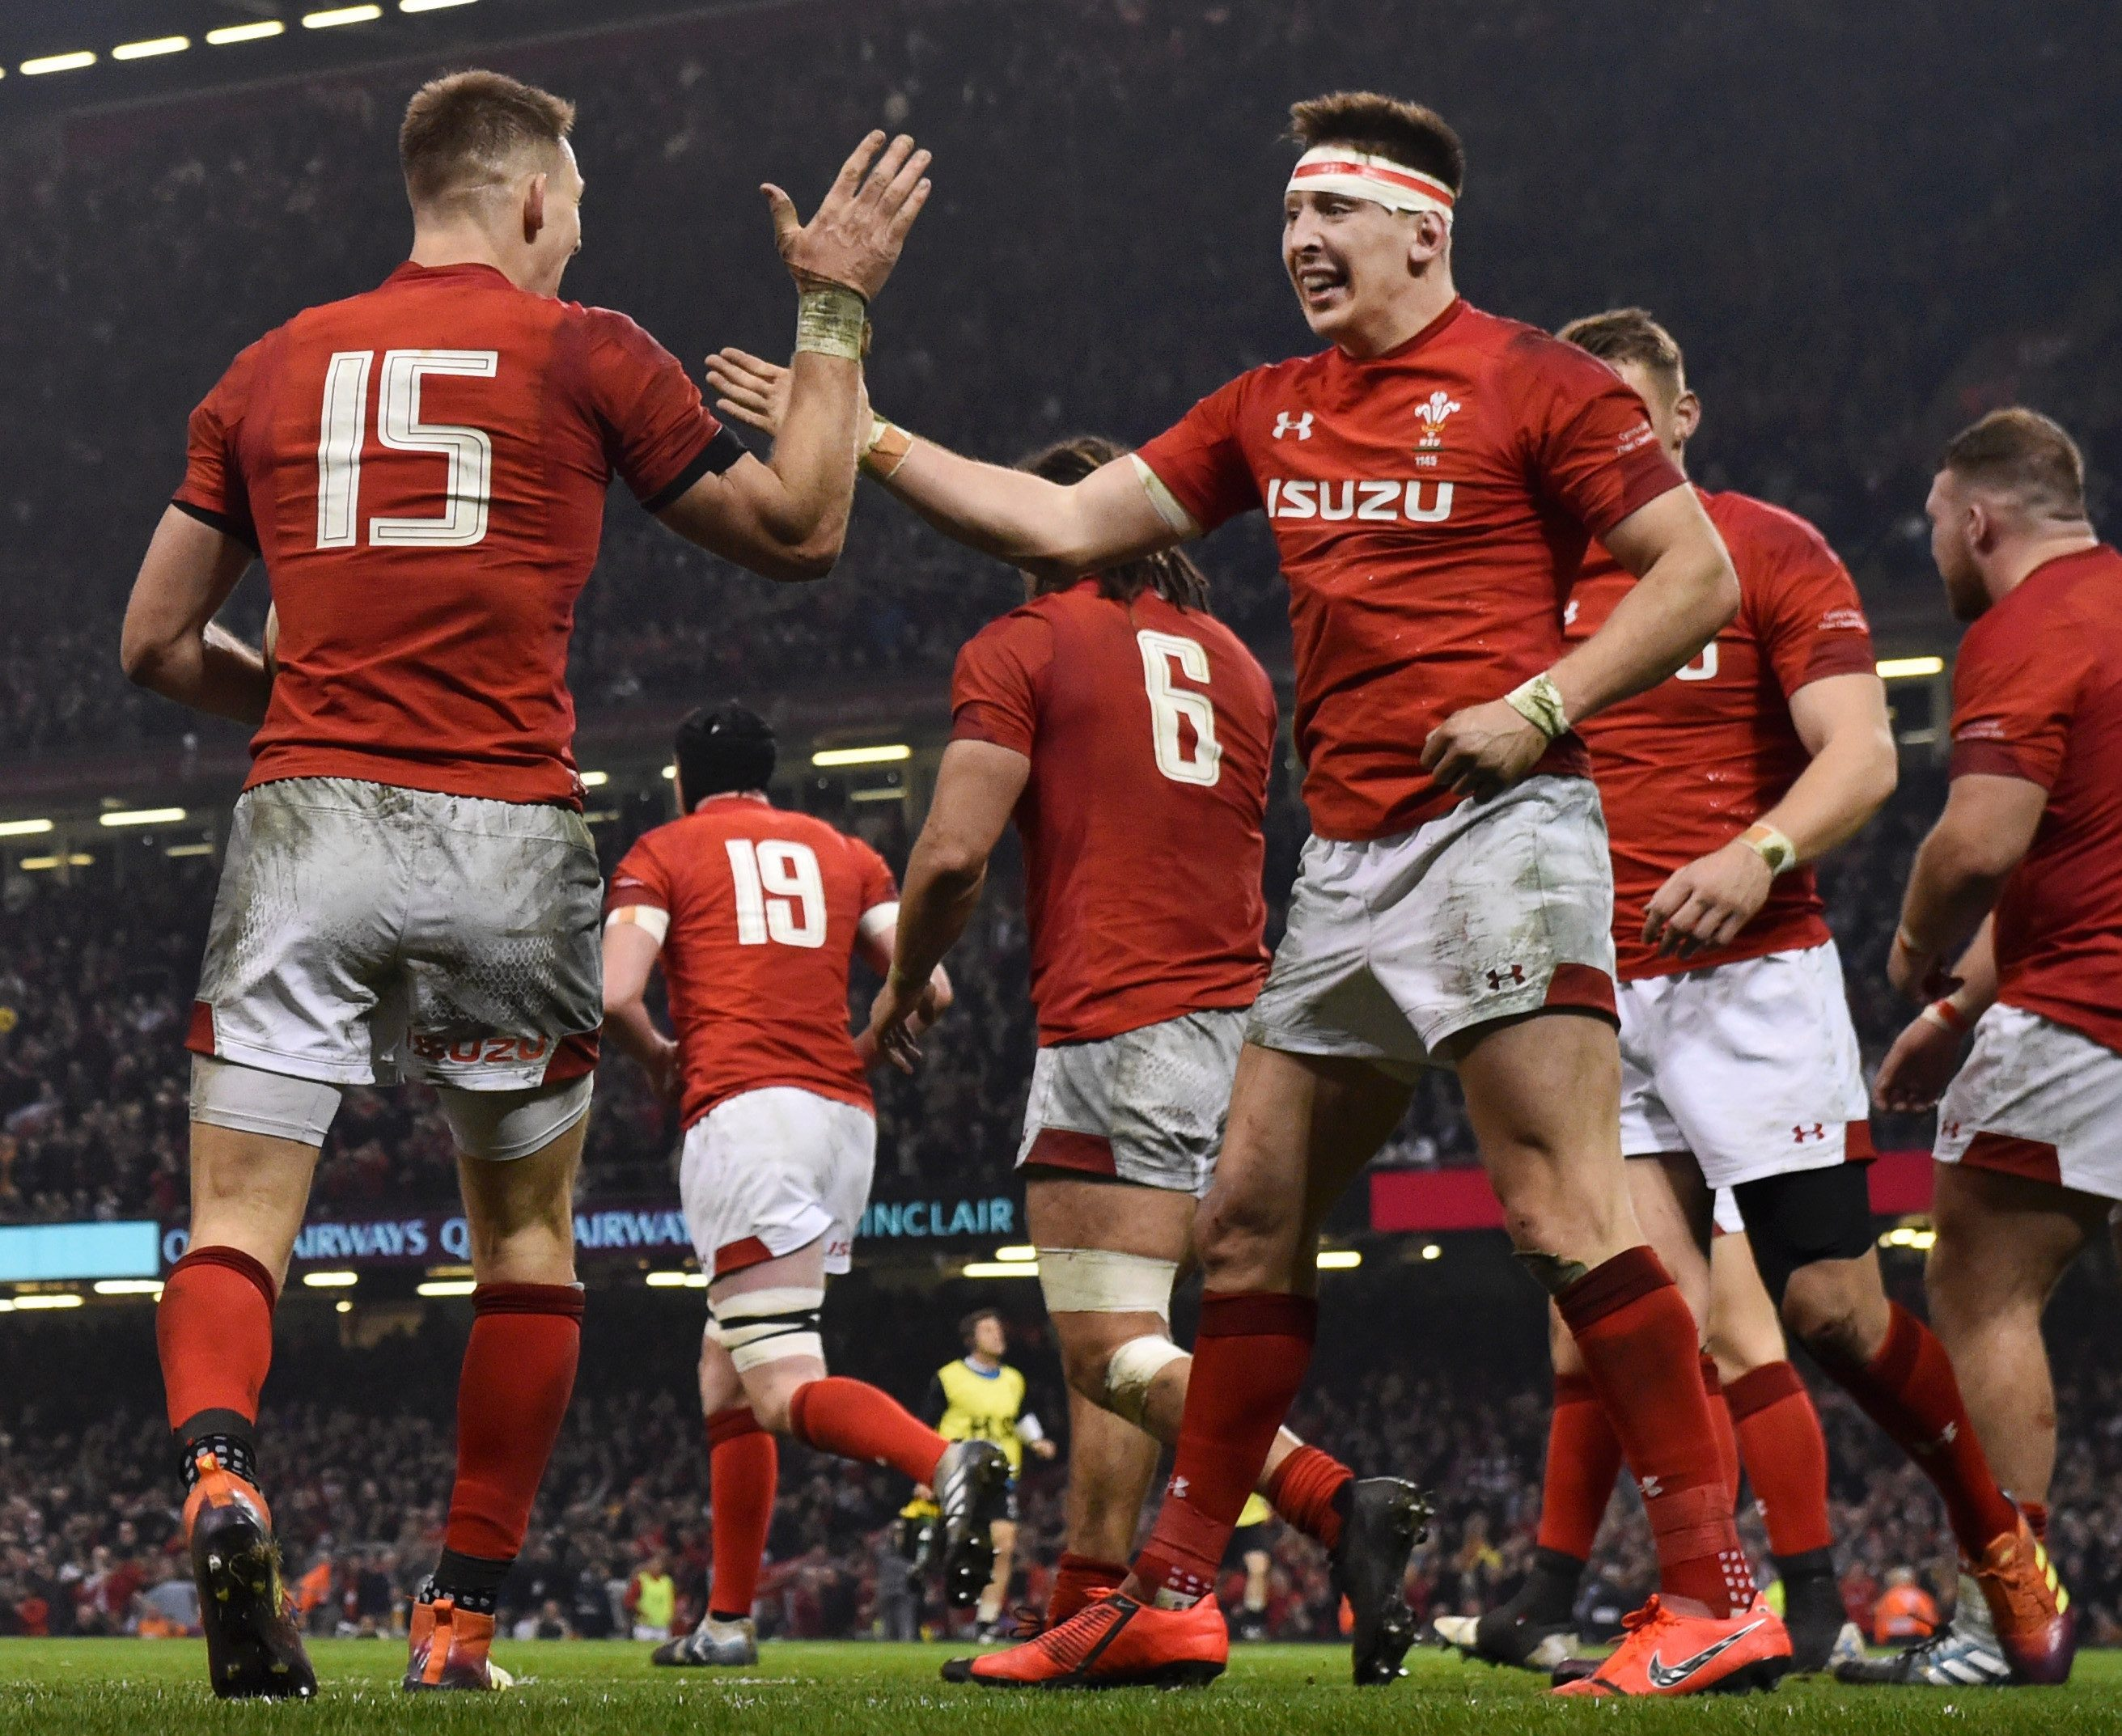 Wales beat England in their last Six Nations match to keep them on course for a Grand Slam victory